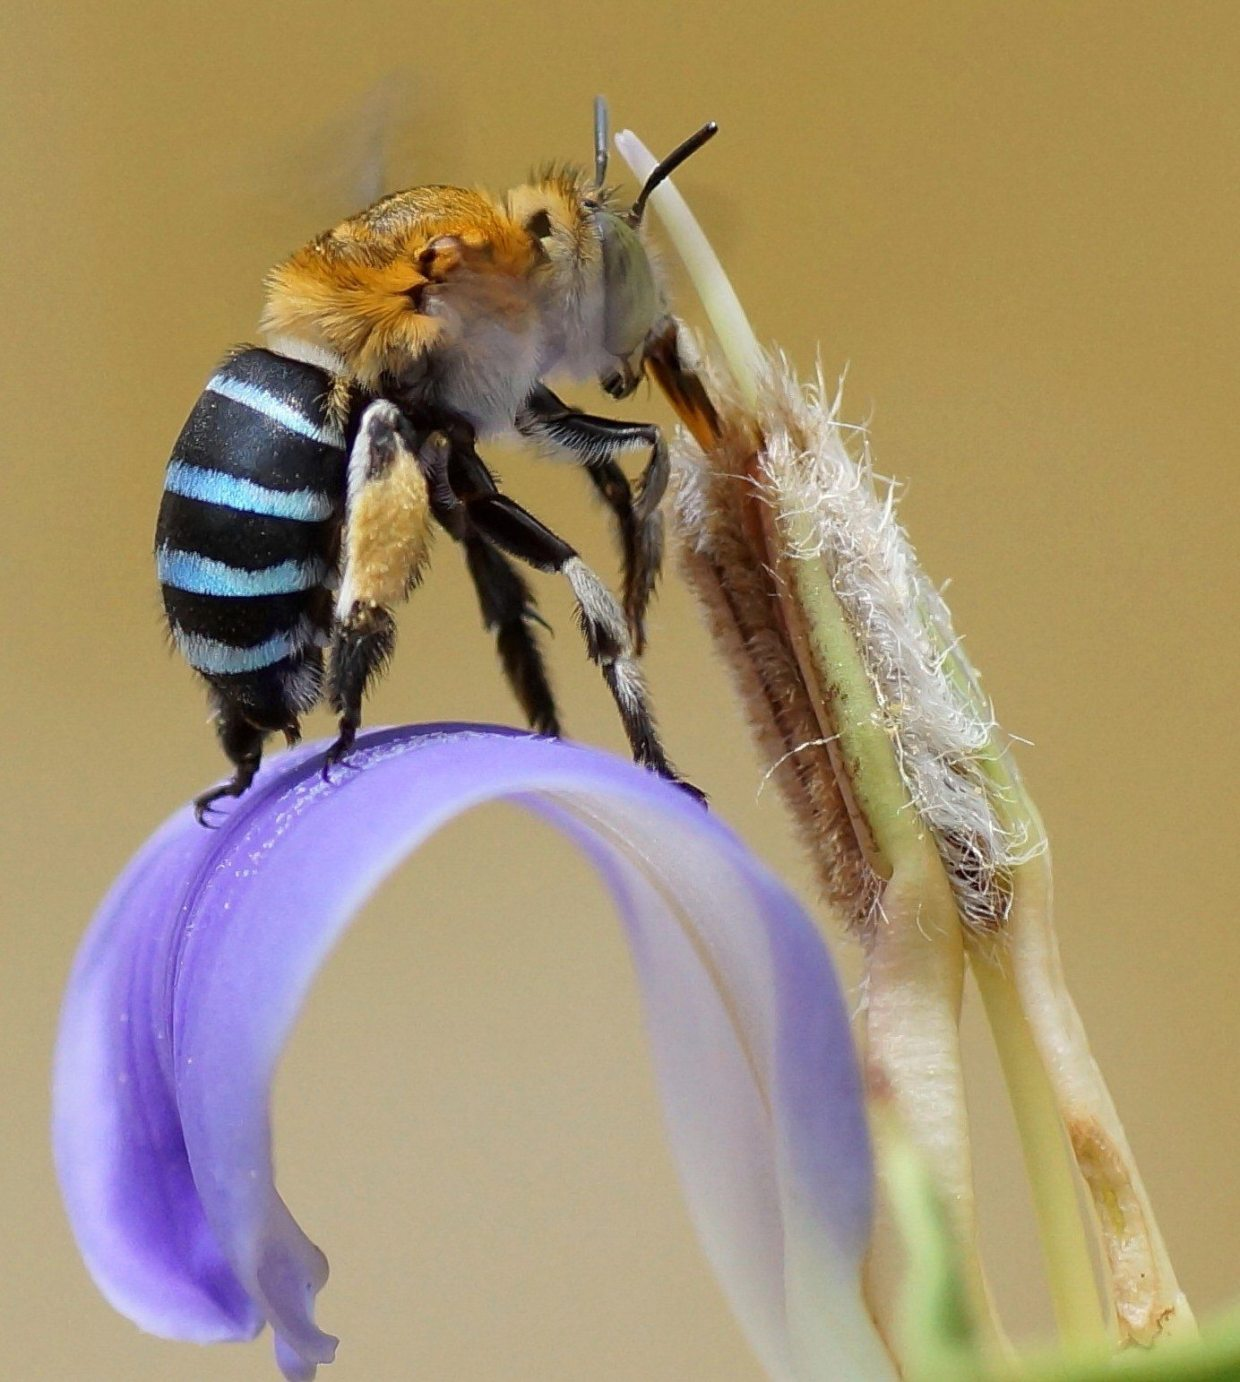 Image: Insect on an iris